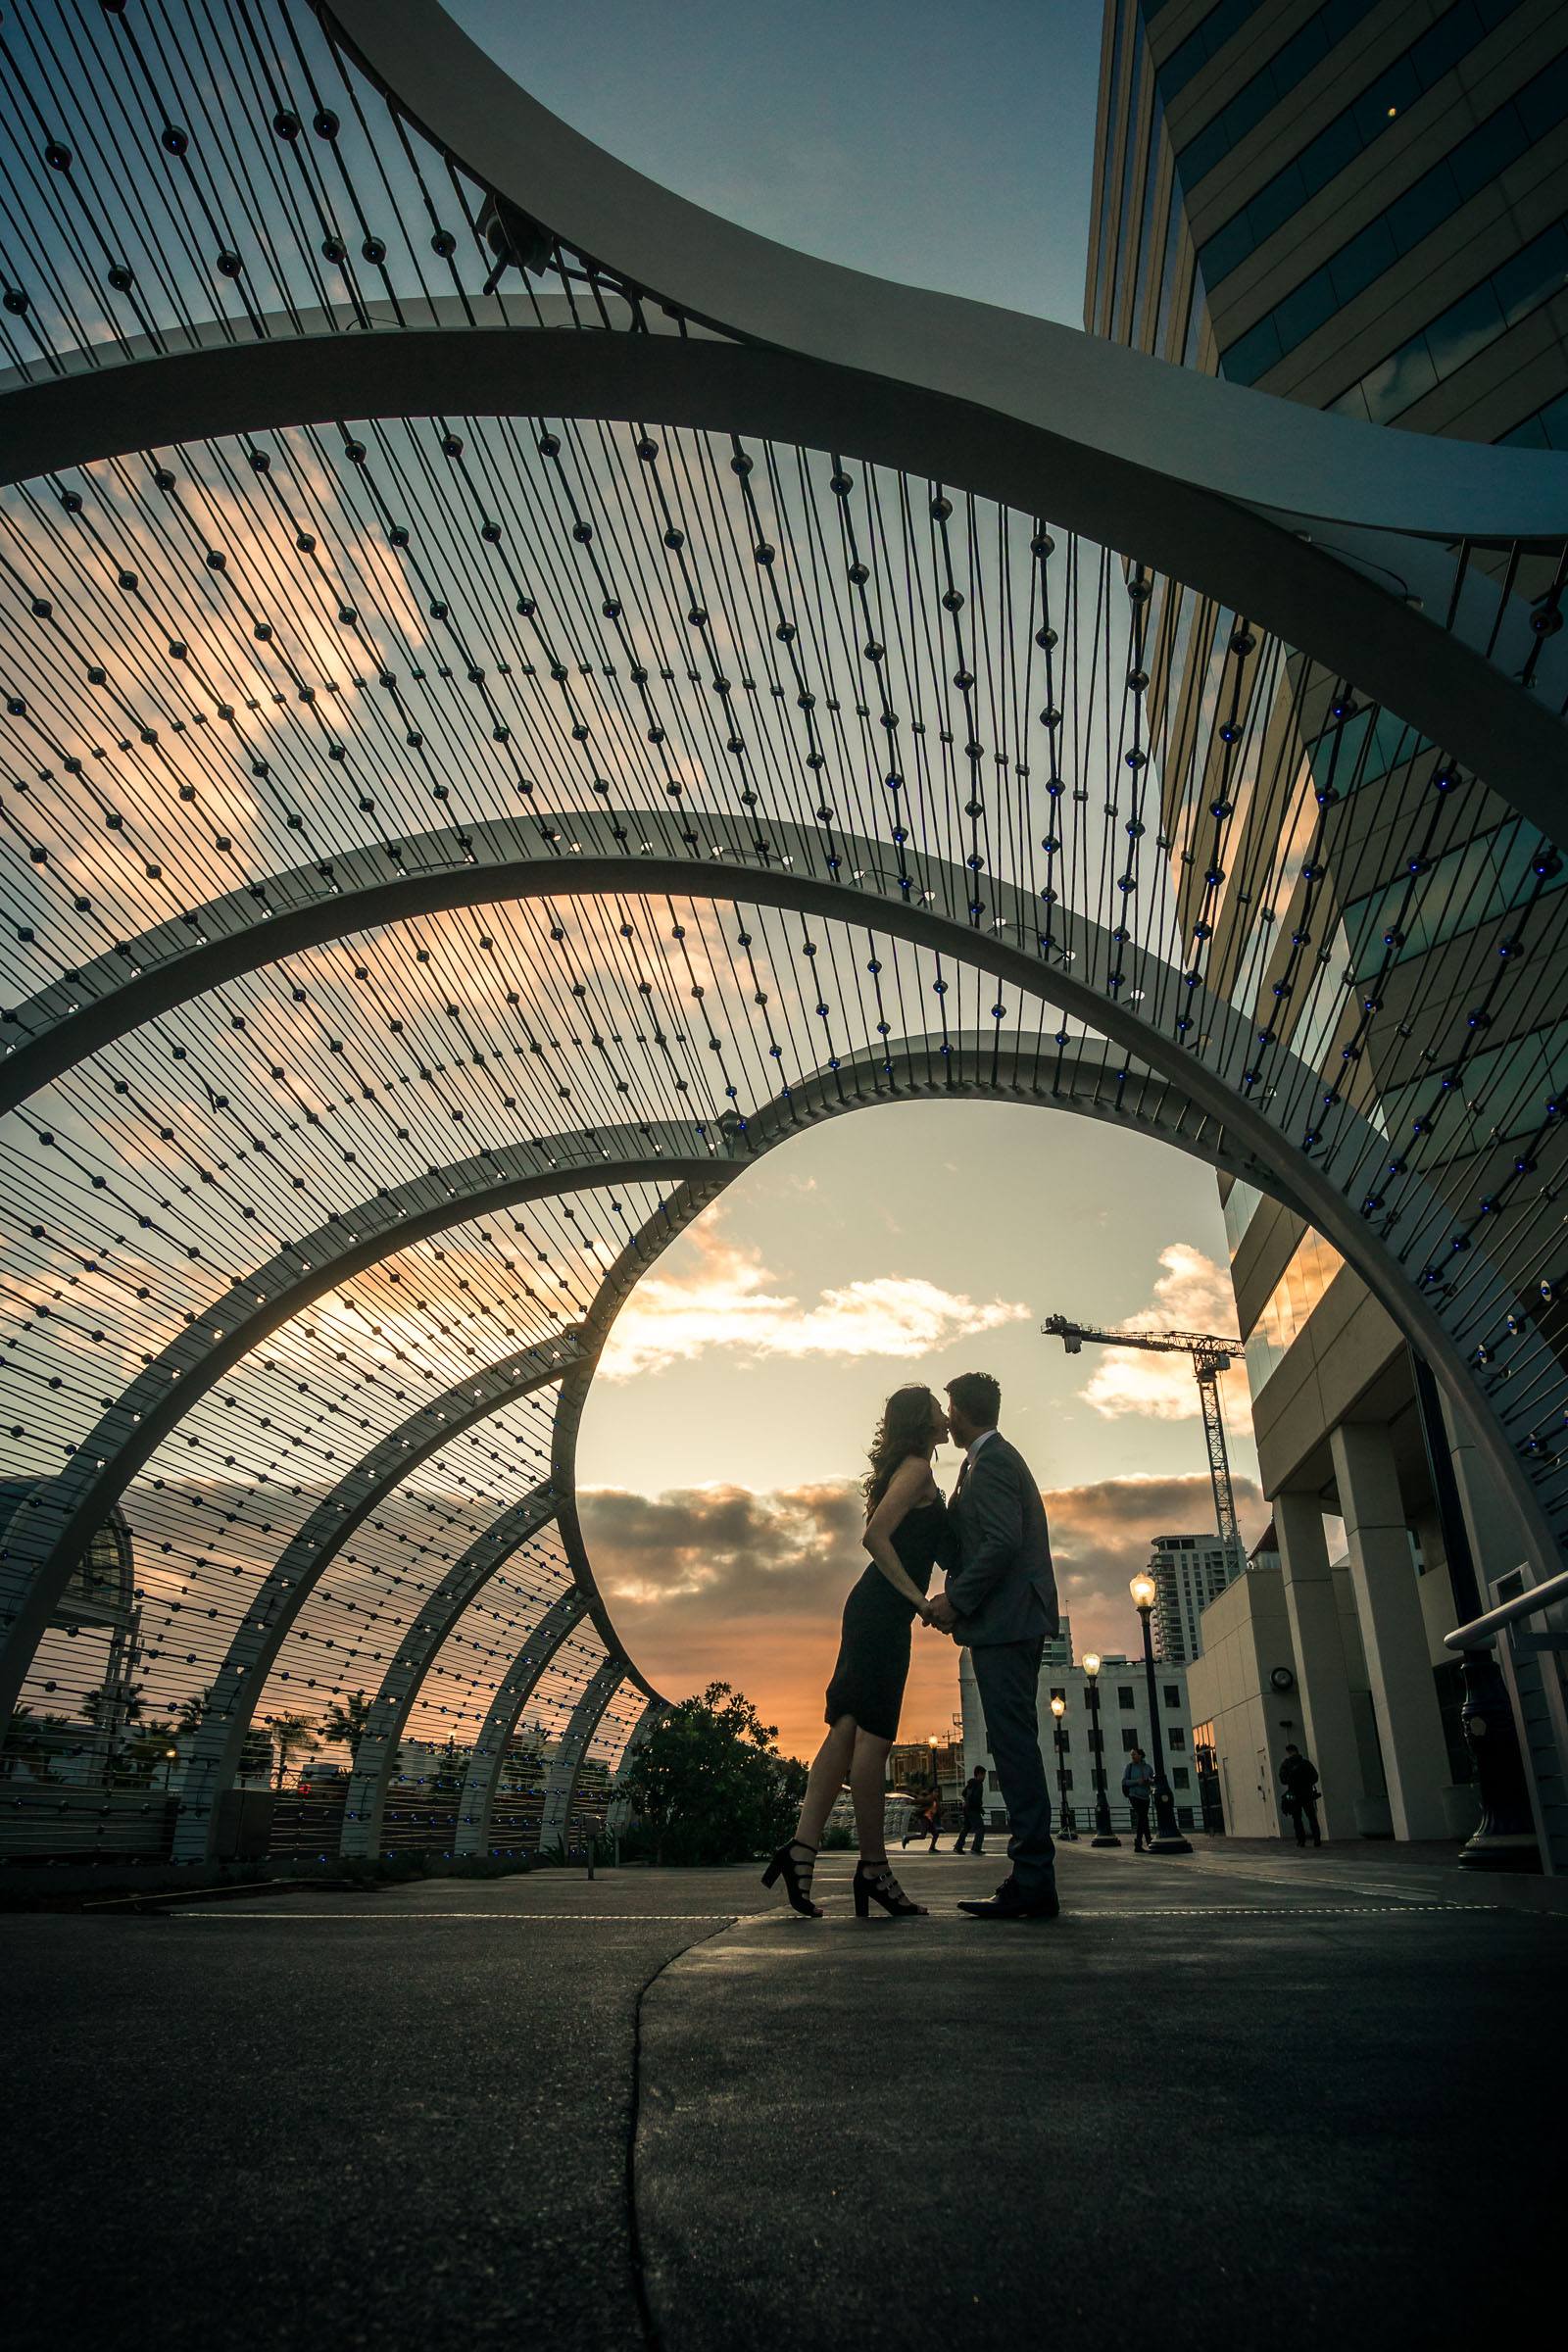 Silhouette of a husband and wife holding hands during a professional portrait photo shootat the rainbow Bridge At the Long Beach convention Center